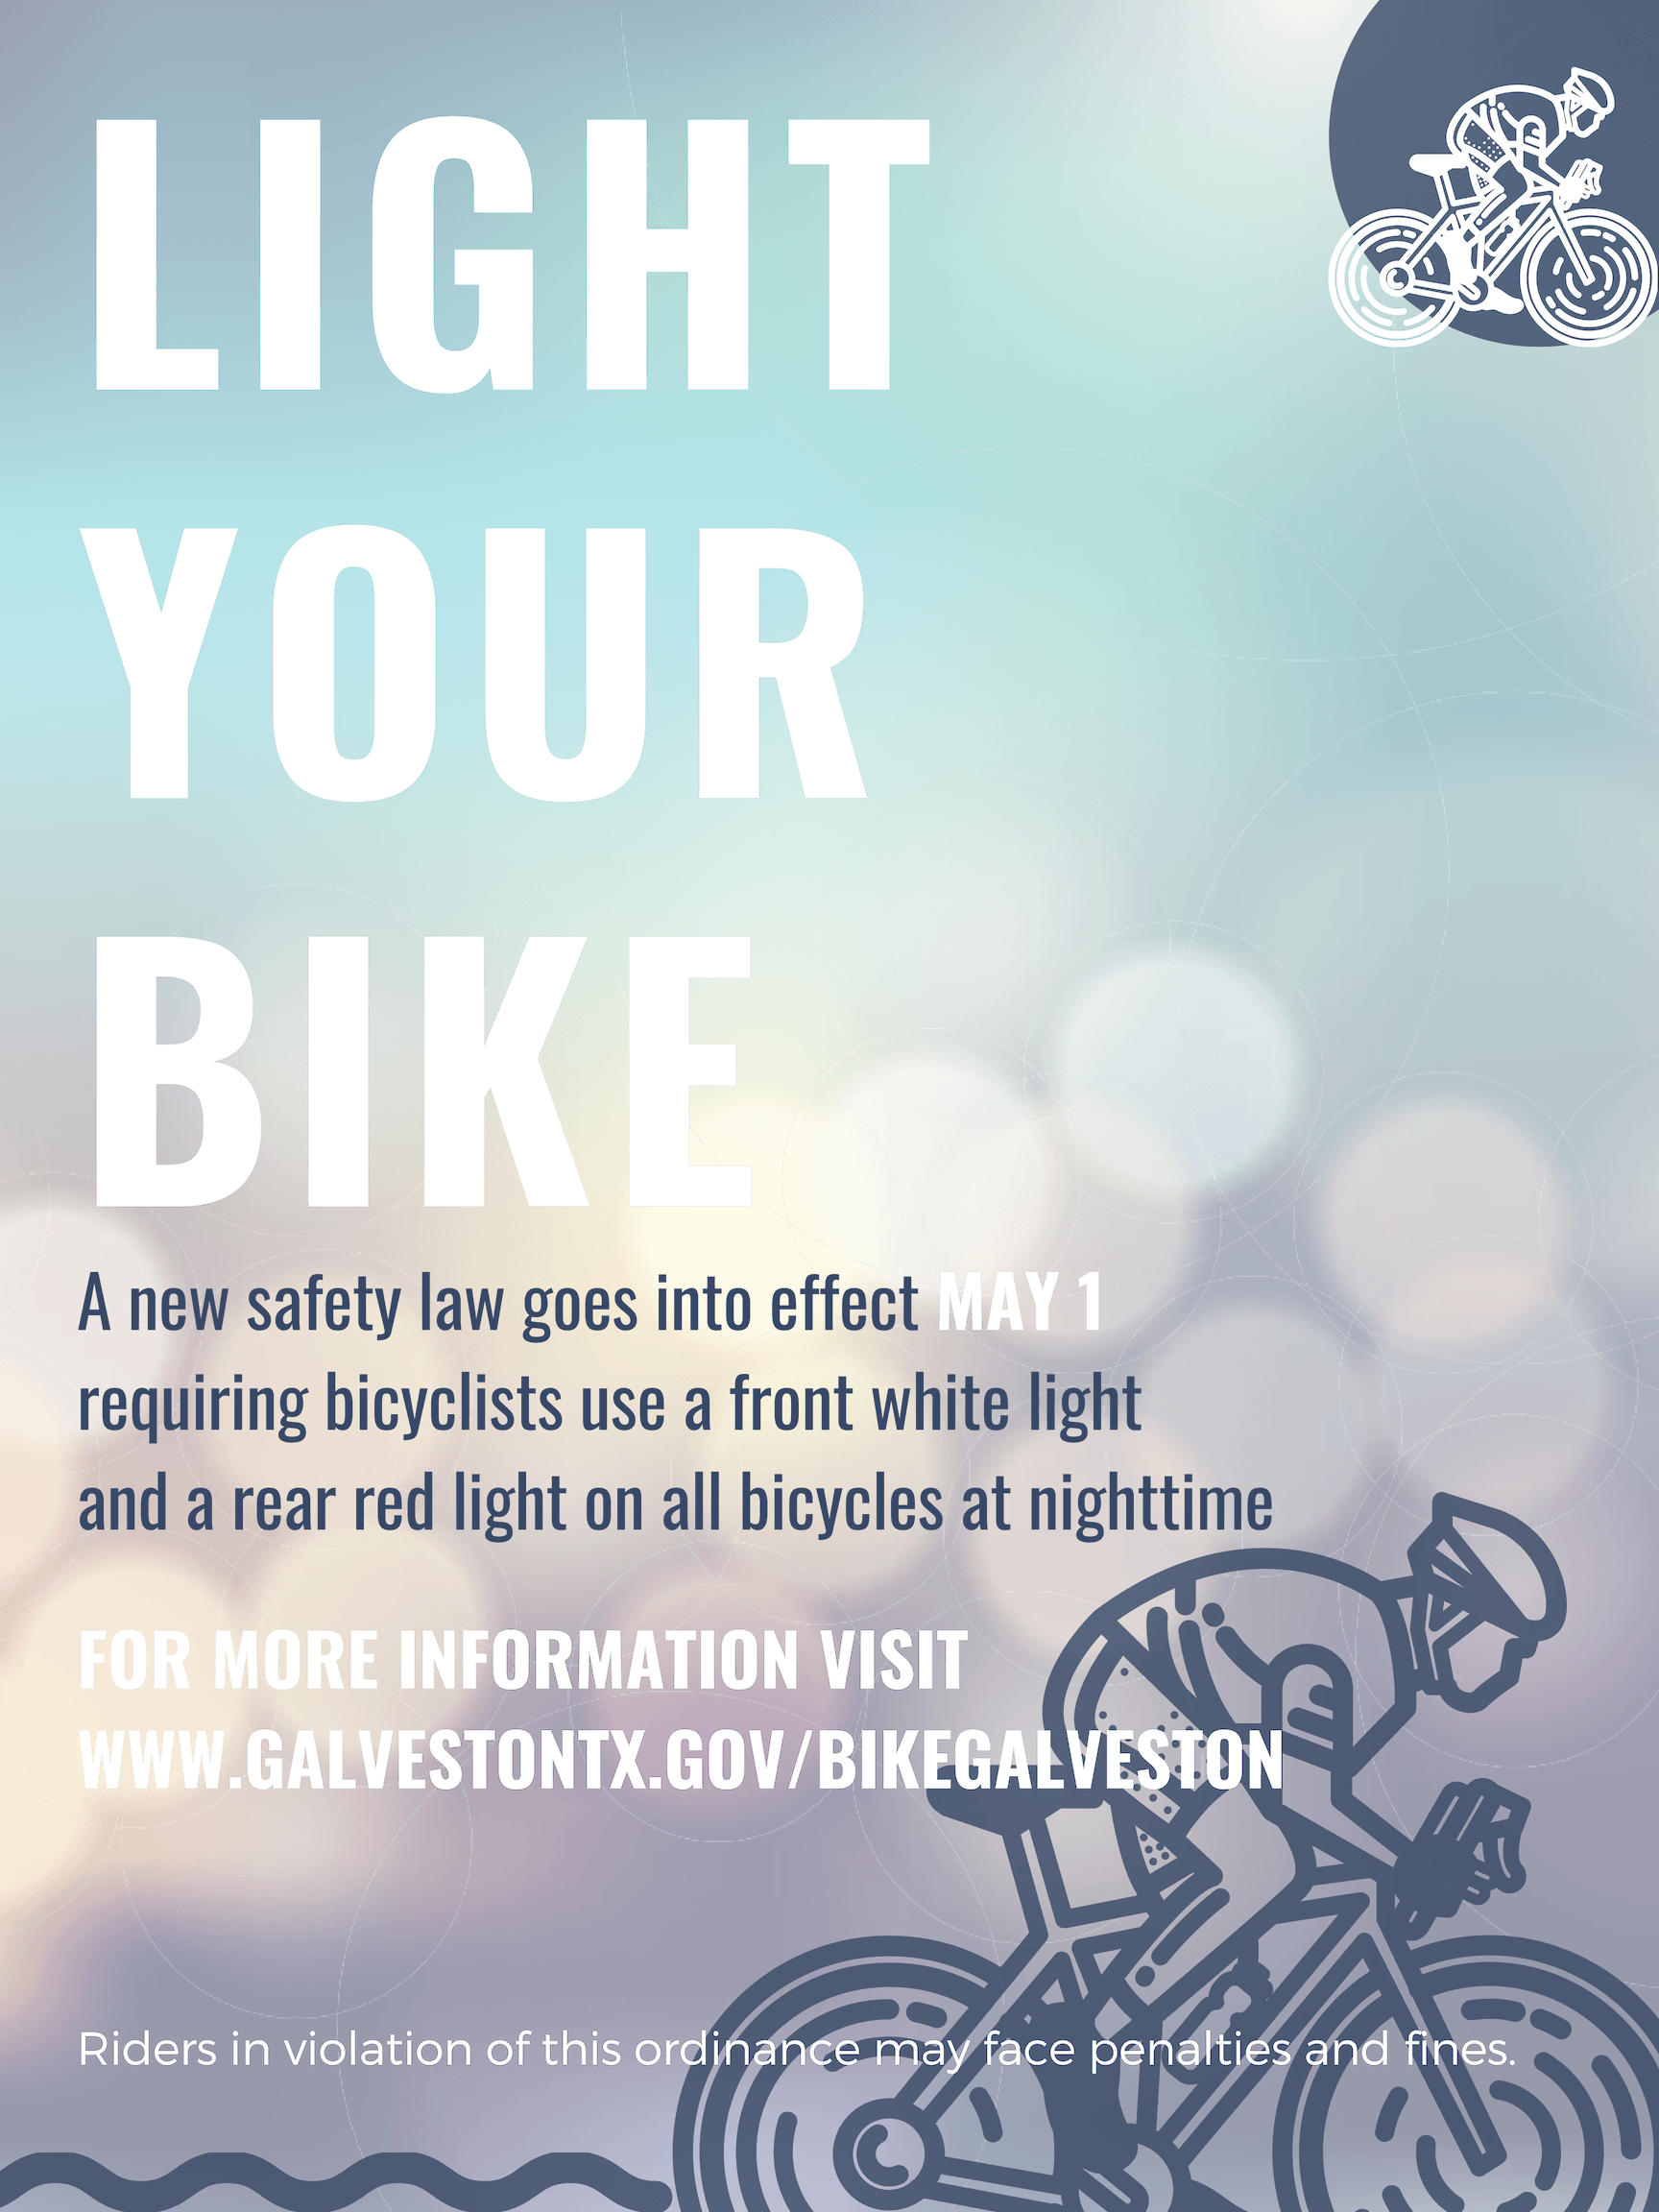 Light your bike edit